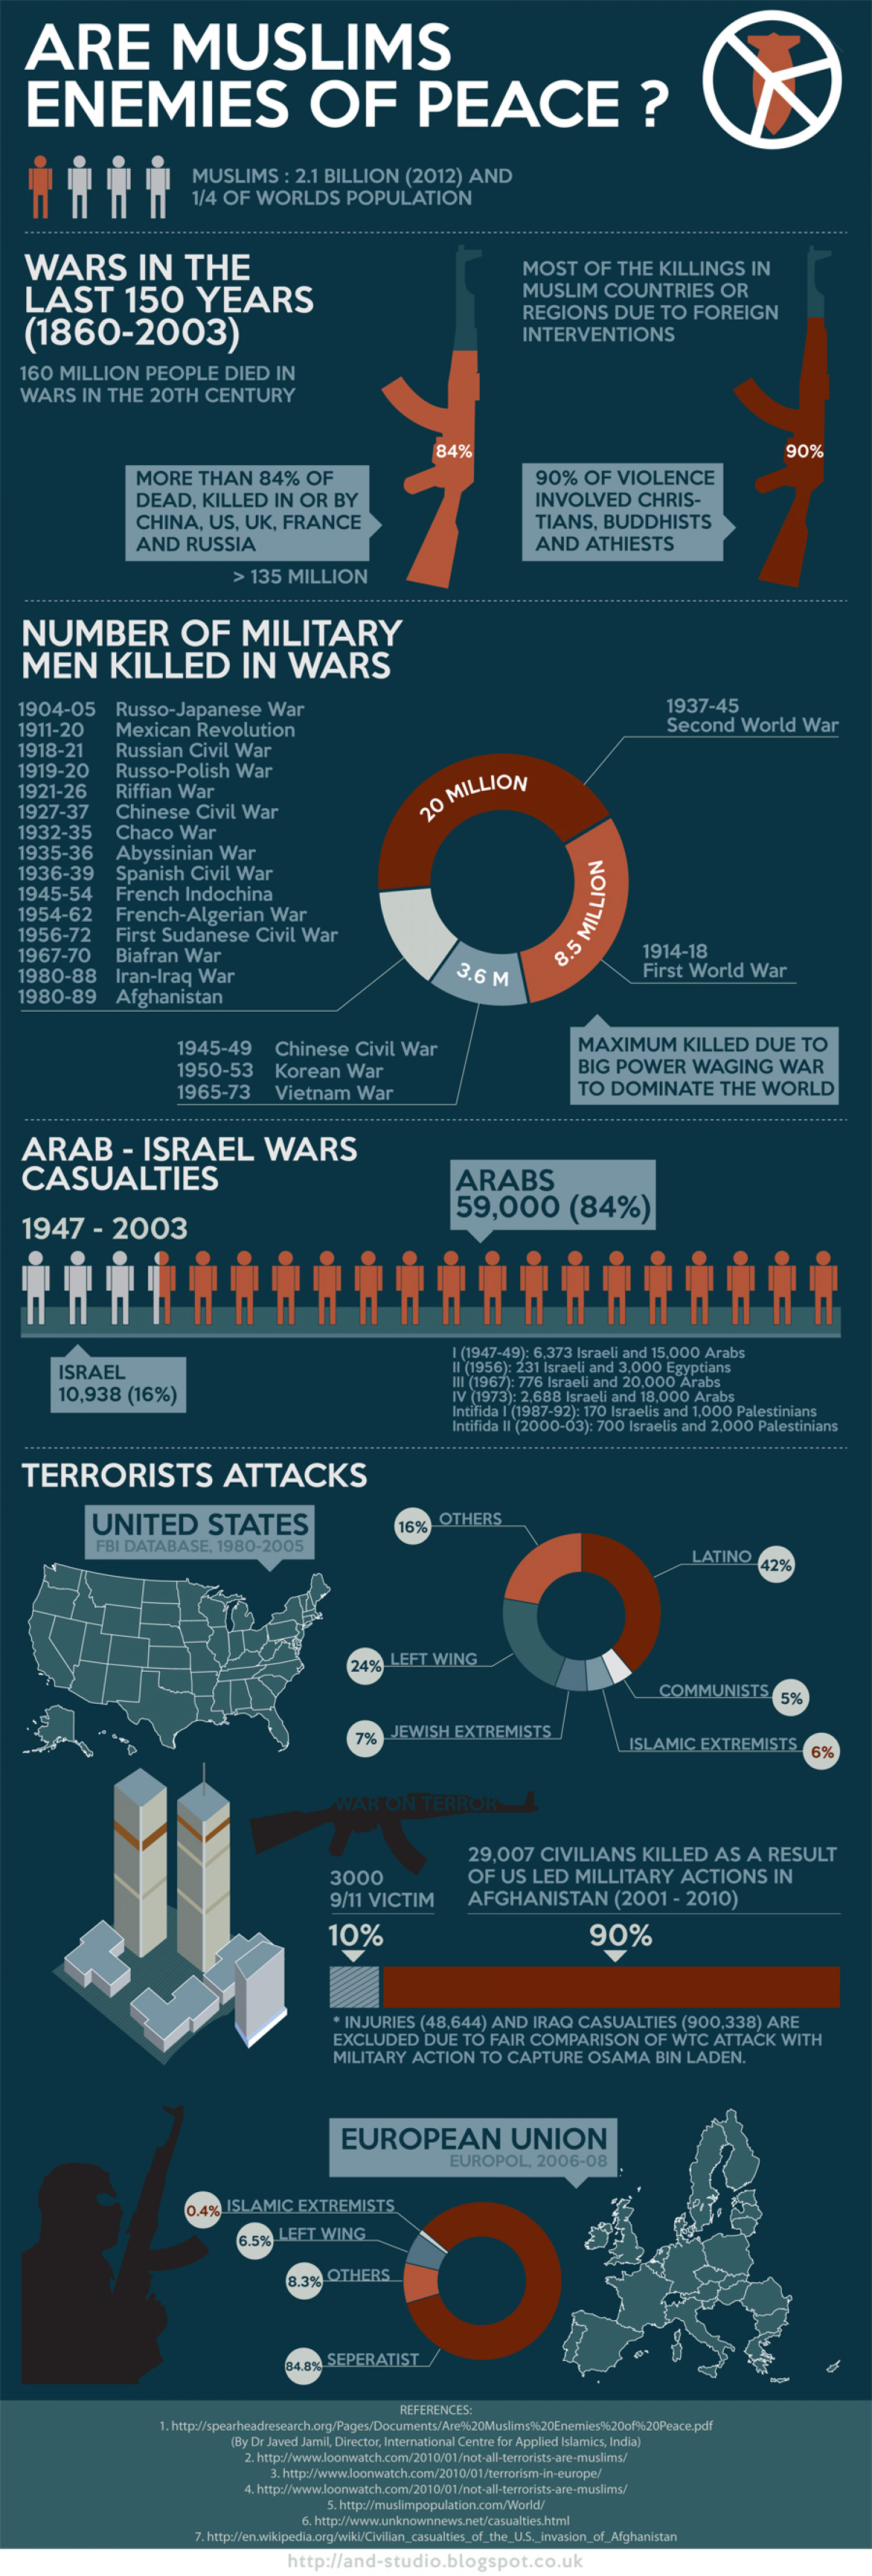 Are Muslims Enemies of Peace? Infographic